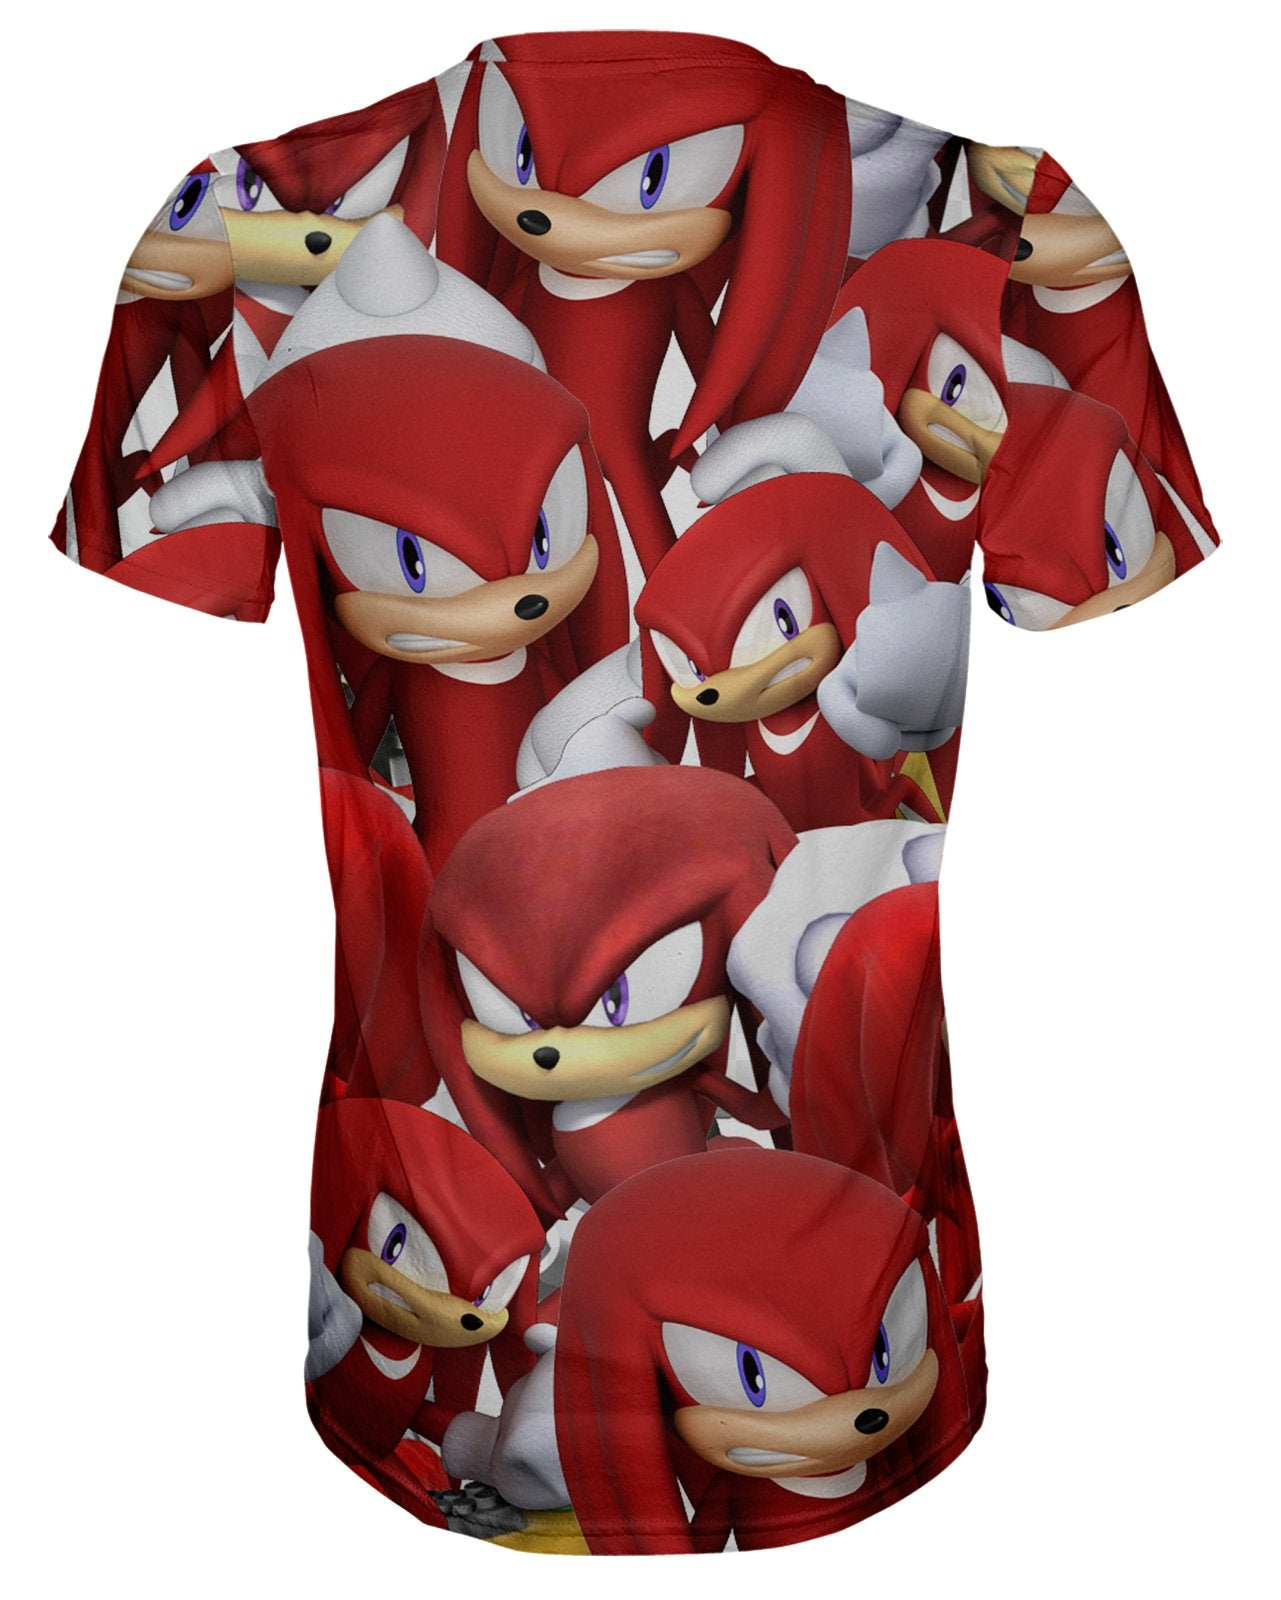 Knuckles Super Smash Bros T-shirt